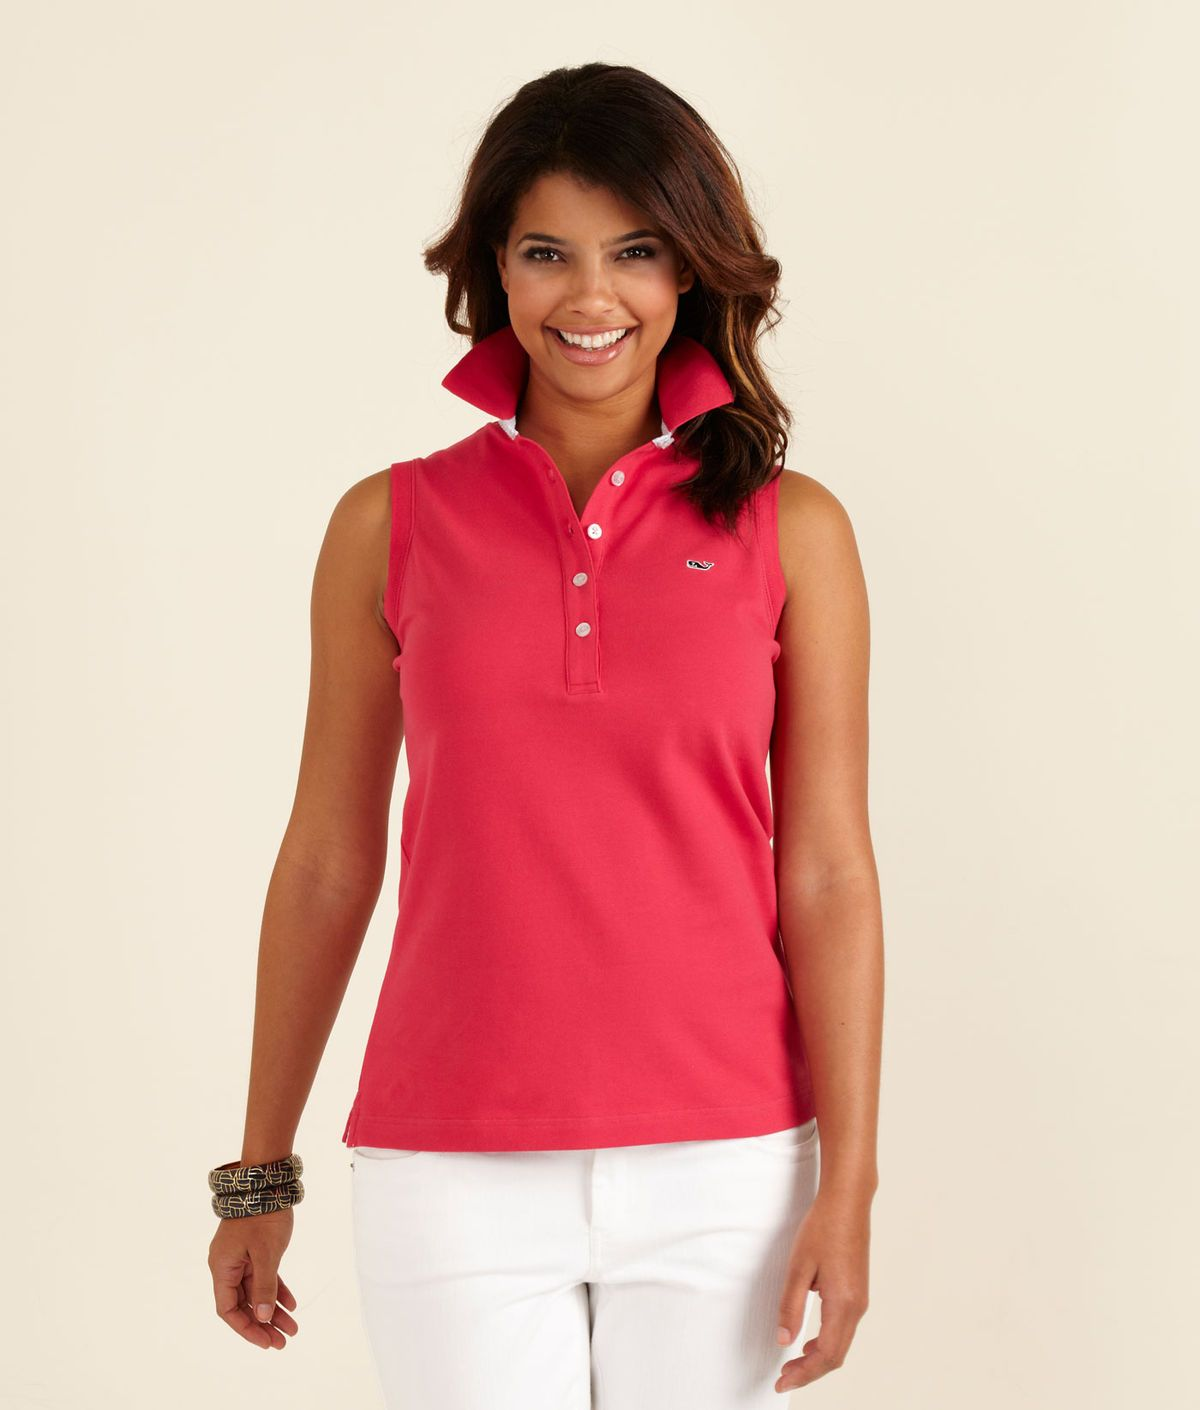 069748653fd3e5 Shoreline Sleeveless Vineyard Vines Polo